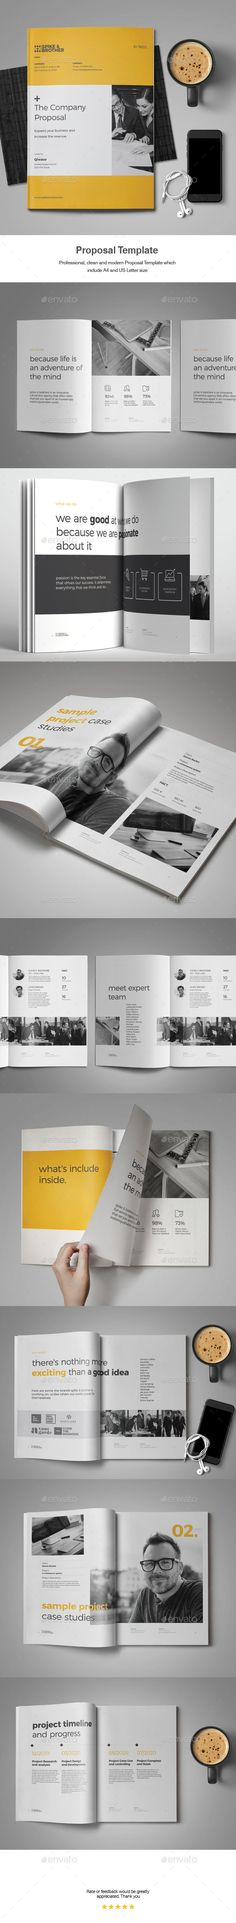 Project Proposal Template 005 Minimalist | Project Proposal